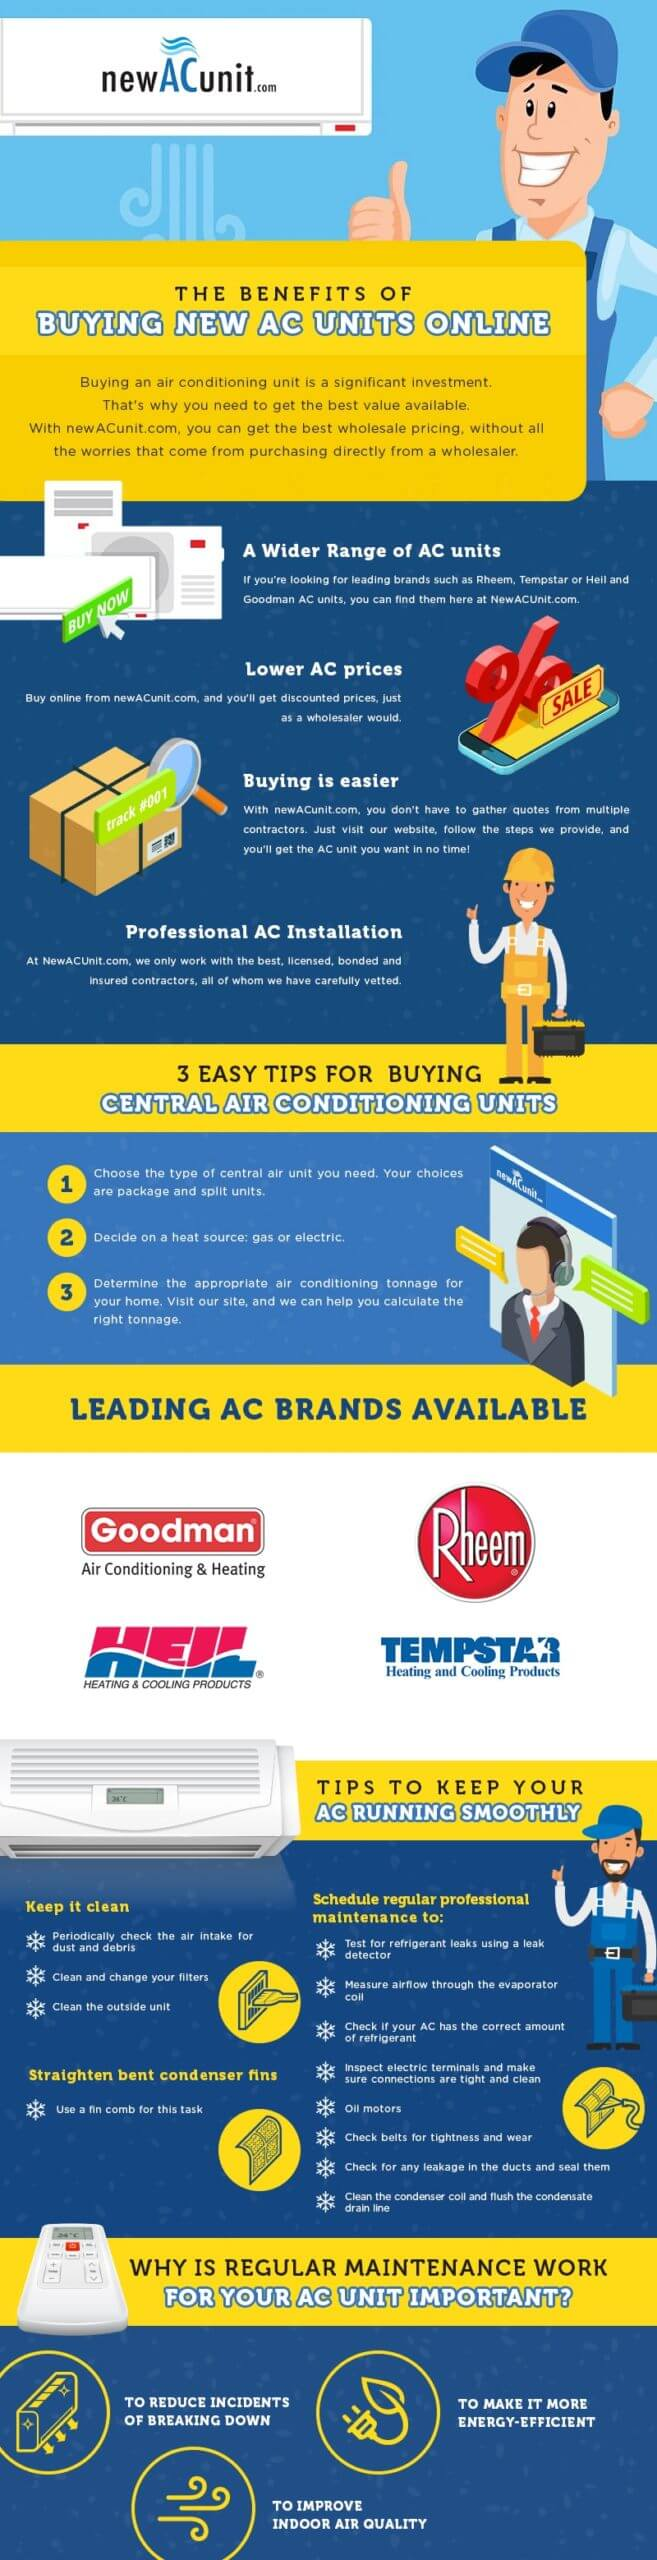 The Benefits of Buying New AC Units Online | Blog | NewACUnit.com